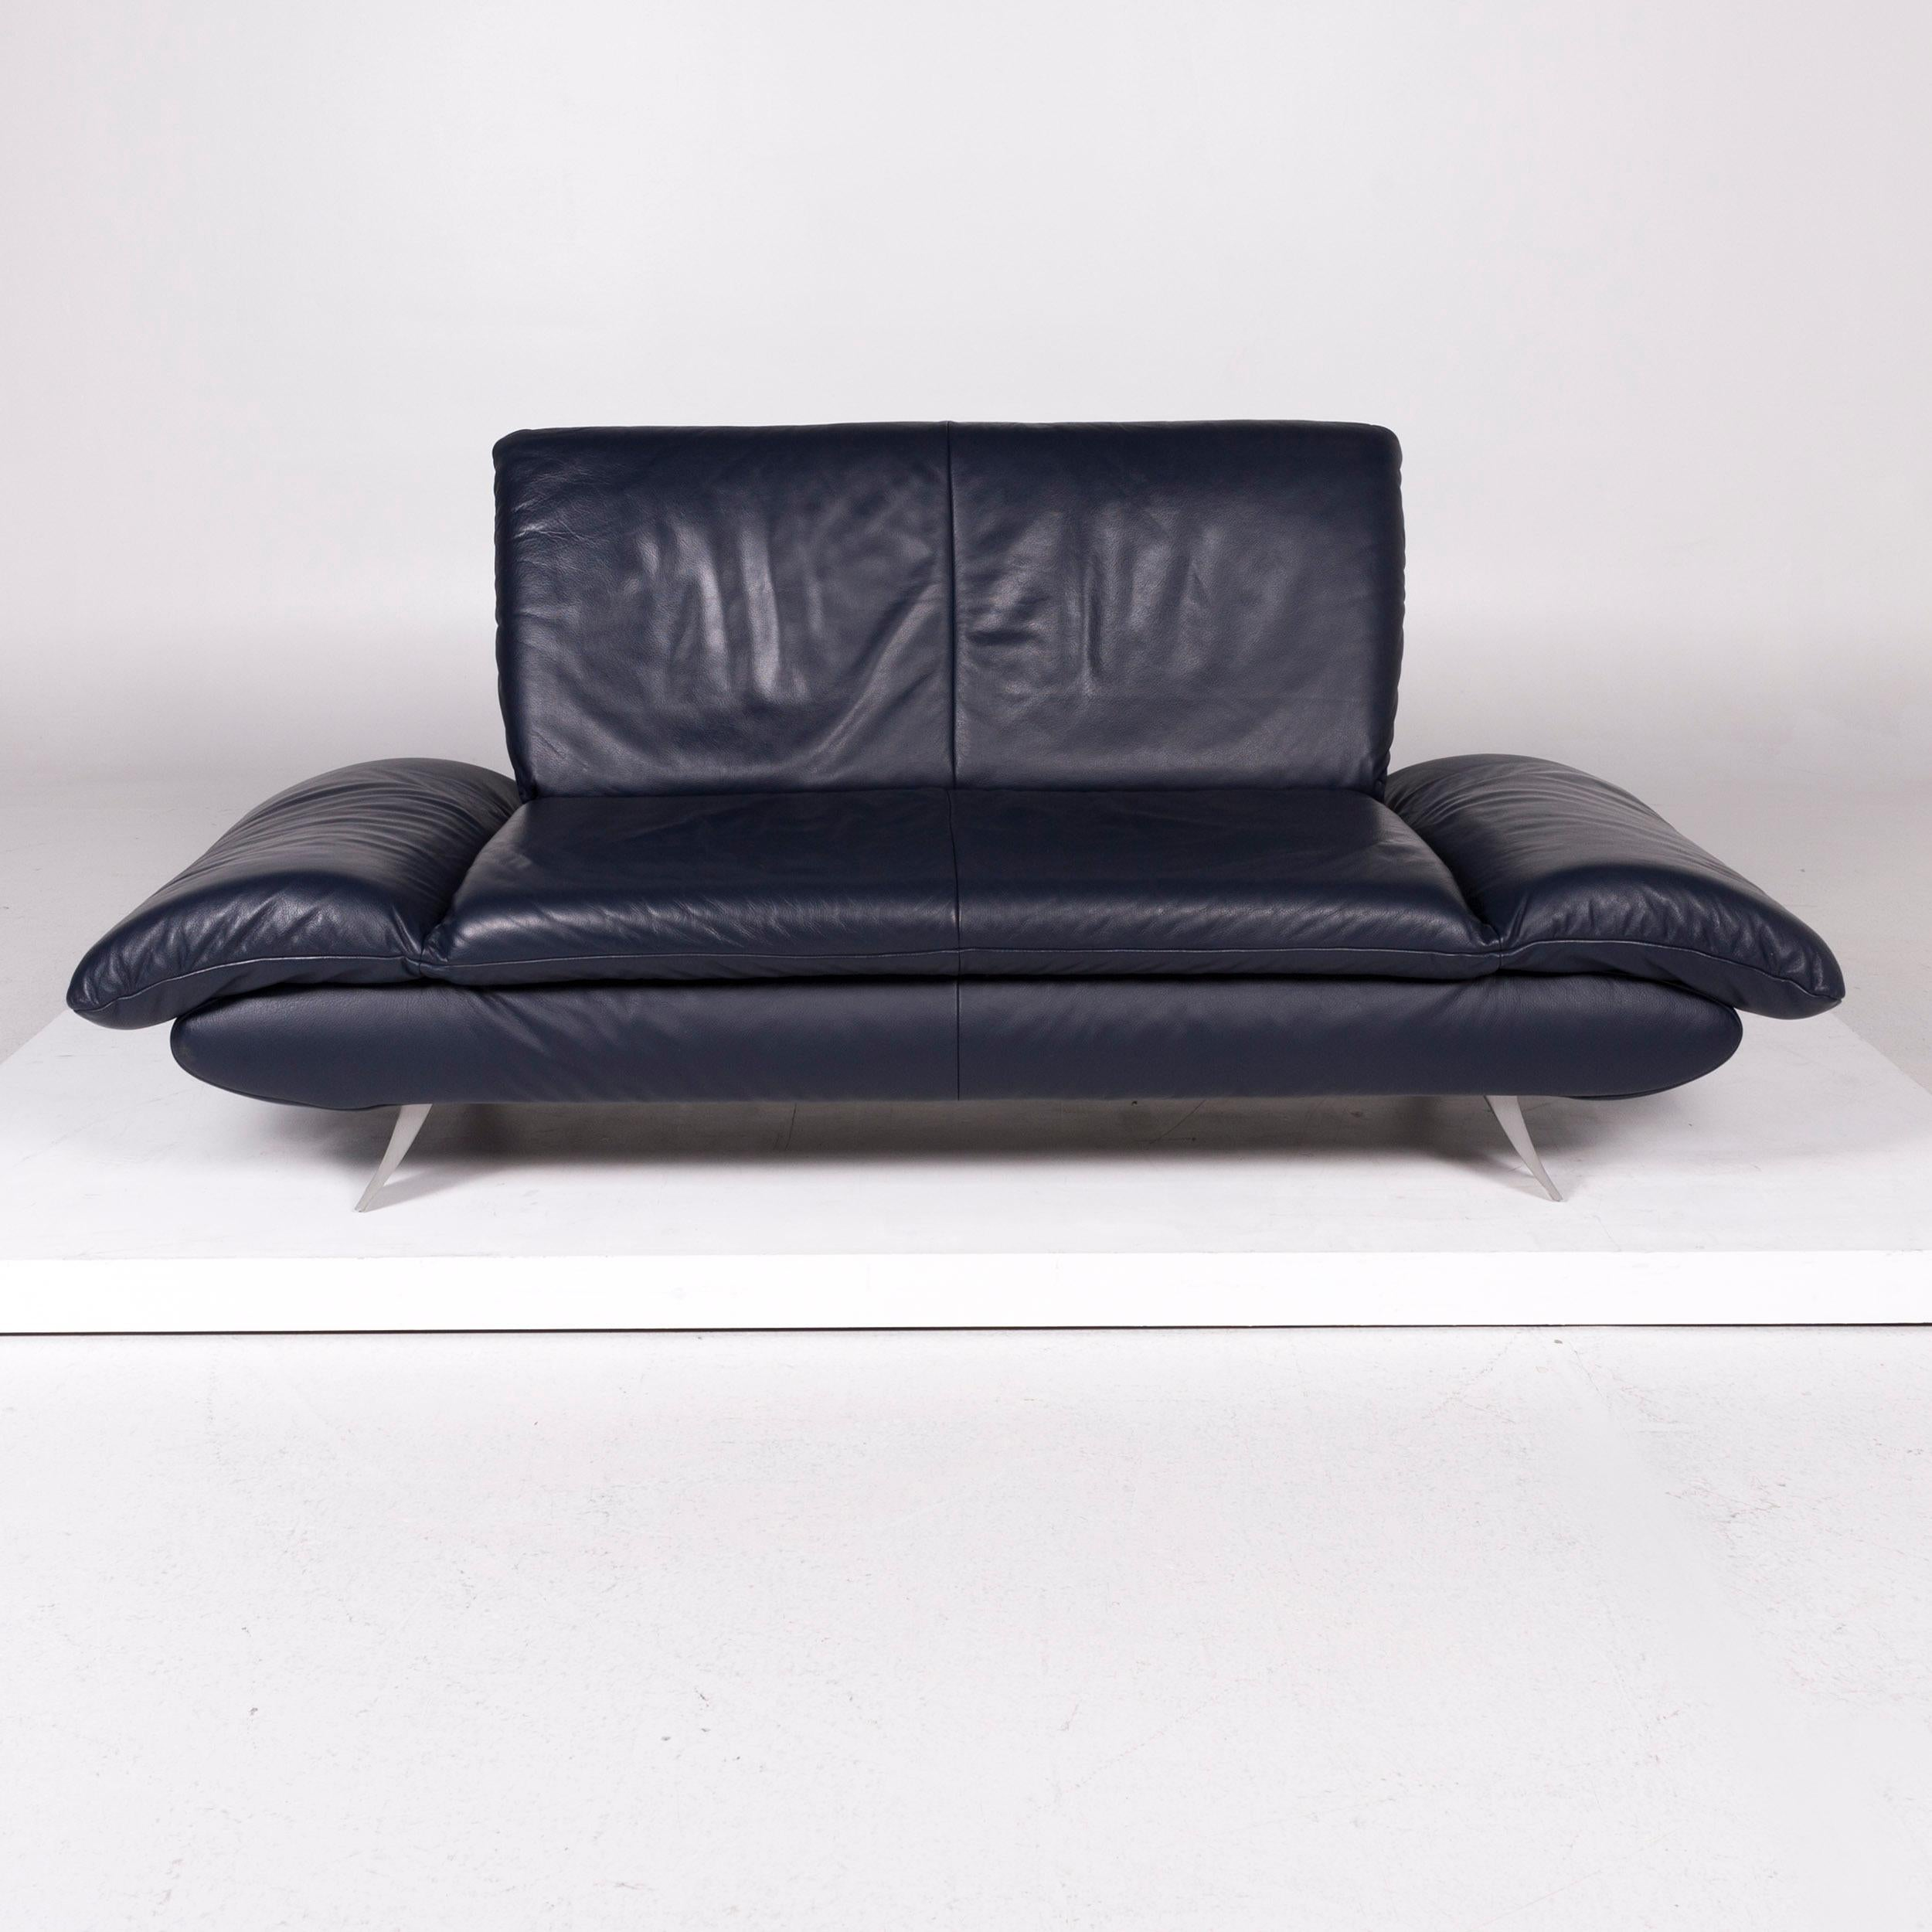 Full Size of Koinor Sofa Rossini Leather Blue Two Seat For Sale At 1stdibs Altes Kare Günstig Relaxfunktion Ottomane Cognac L Mit Schlaffunktion Rattan Zweisitzer Sofa Koinor Sofa